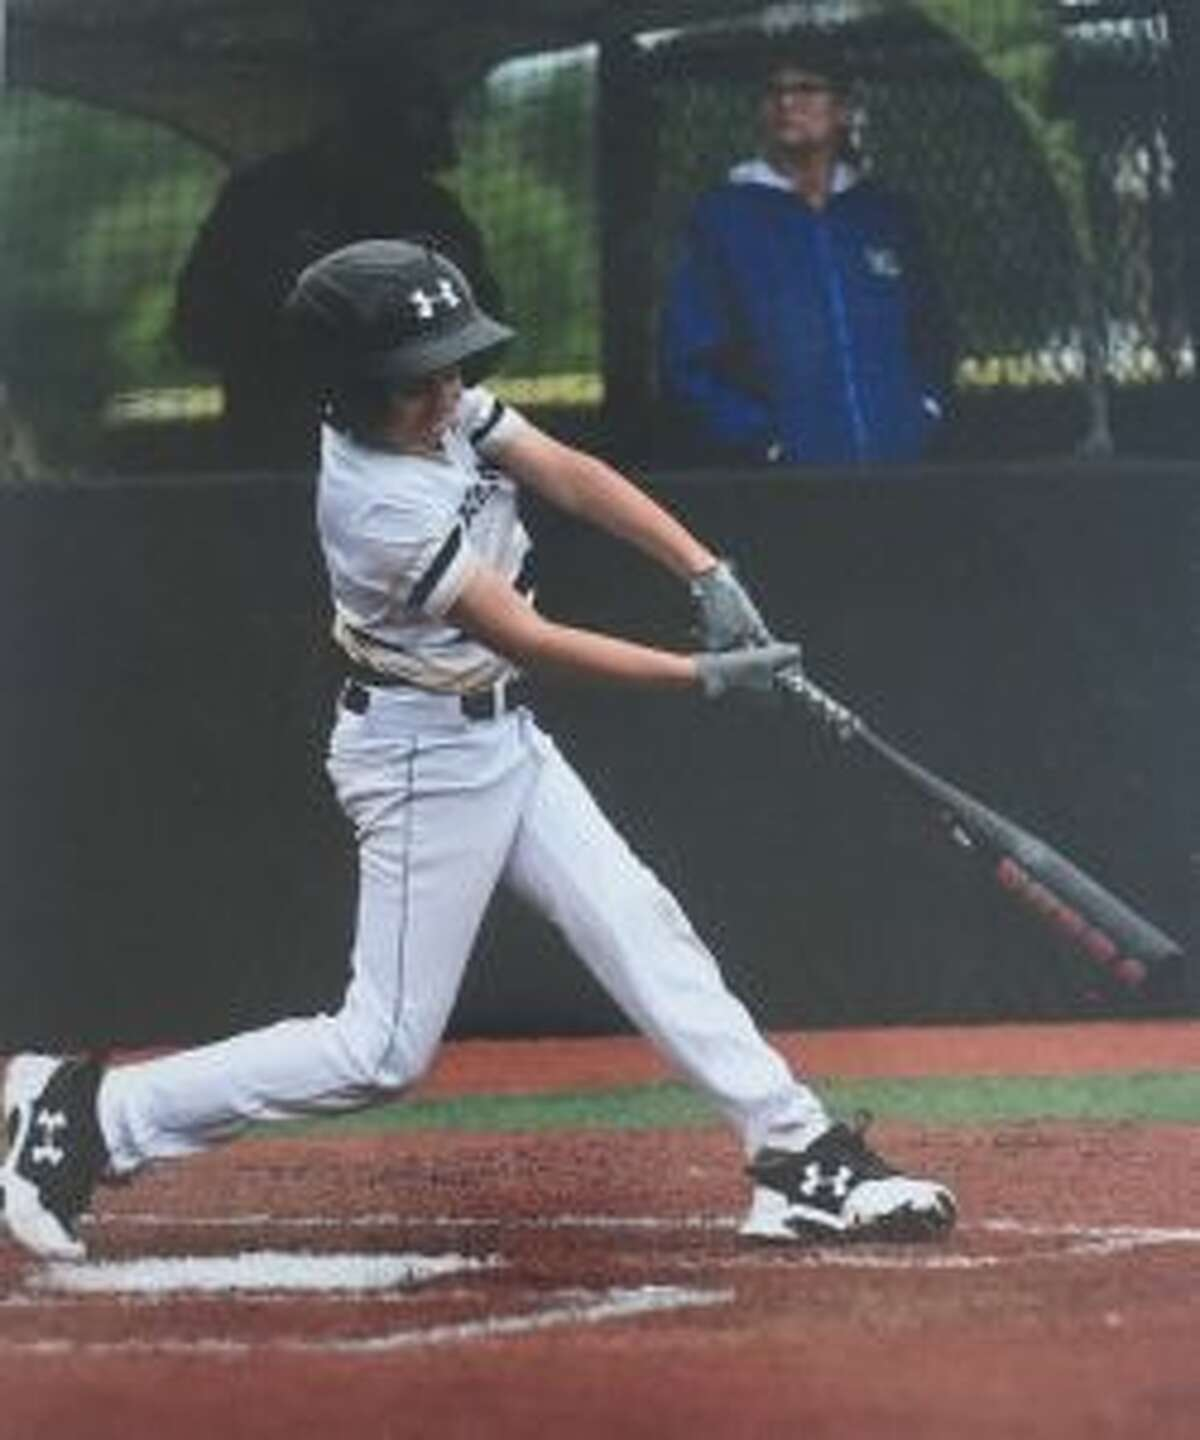 Andrew Valentino was selected to play for the U9 Northeast Region team at the All American Games.